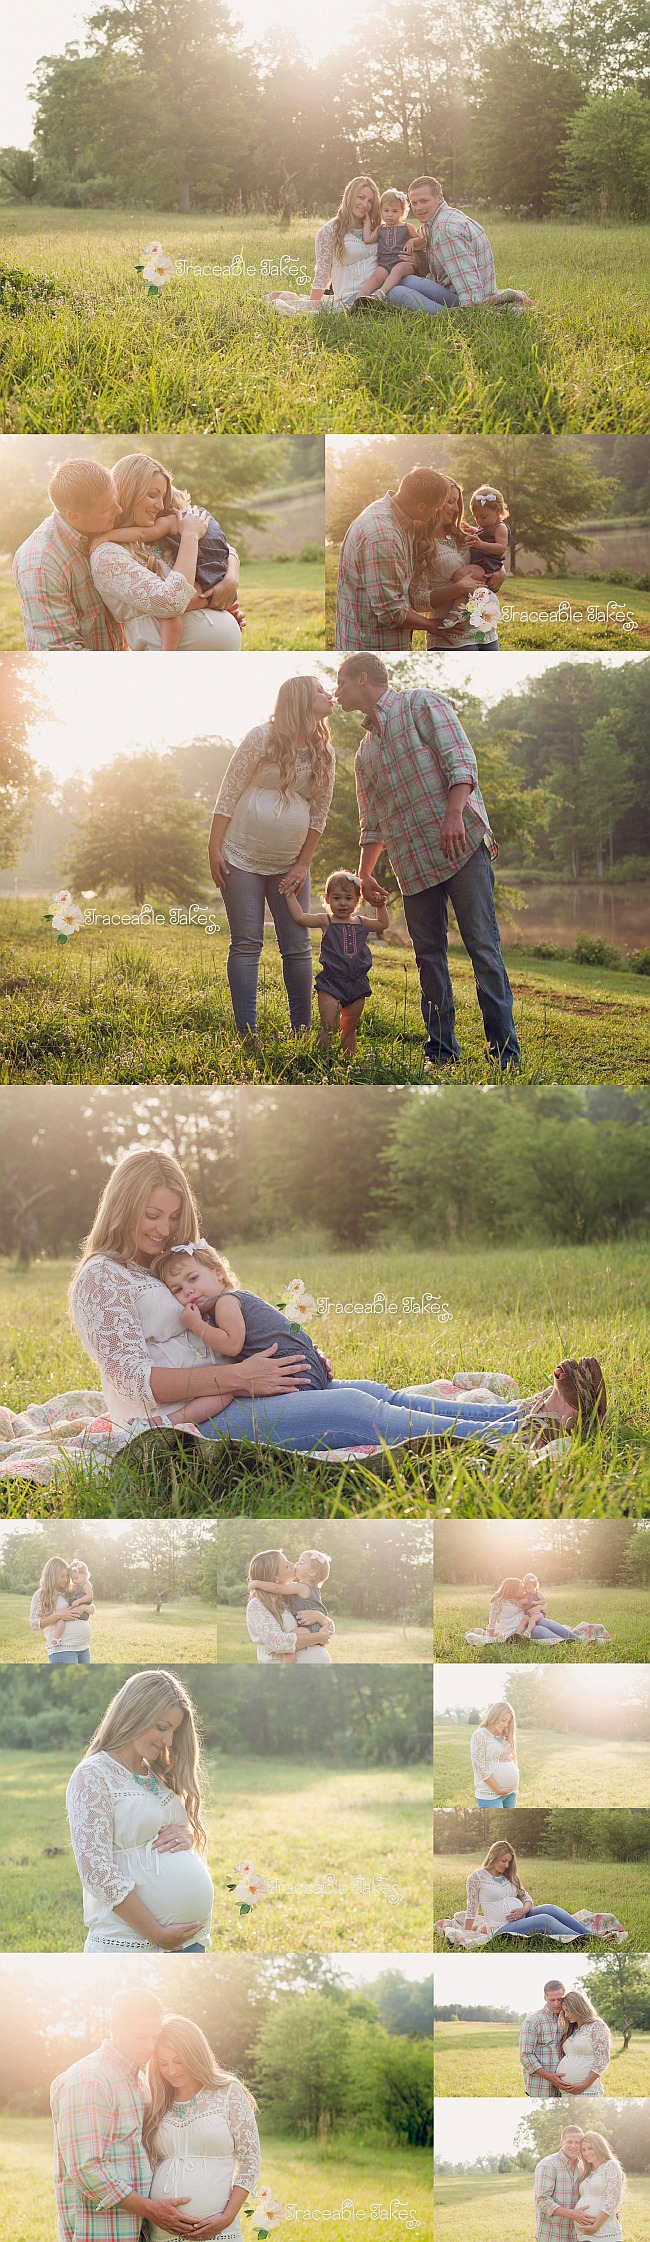 maternity-photos-ftbenning-ga-traceabletakes